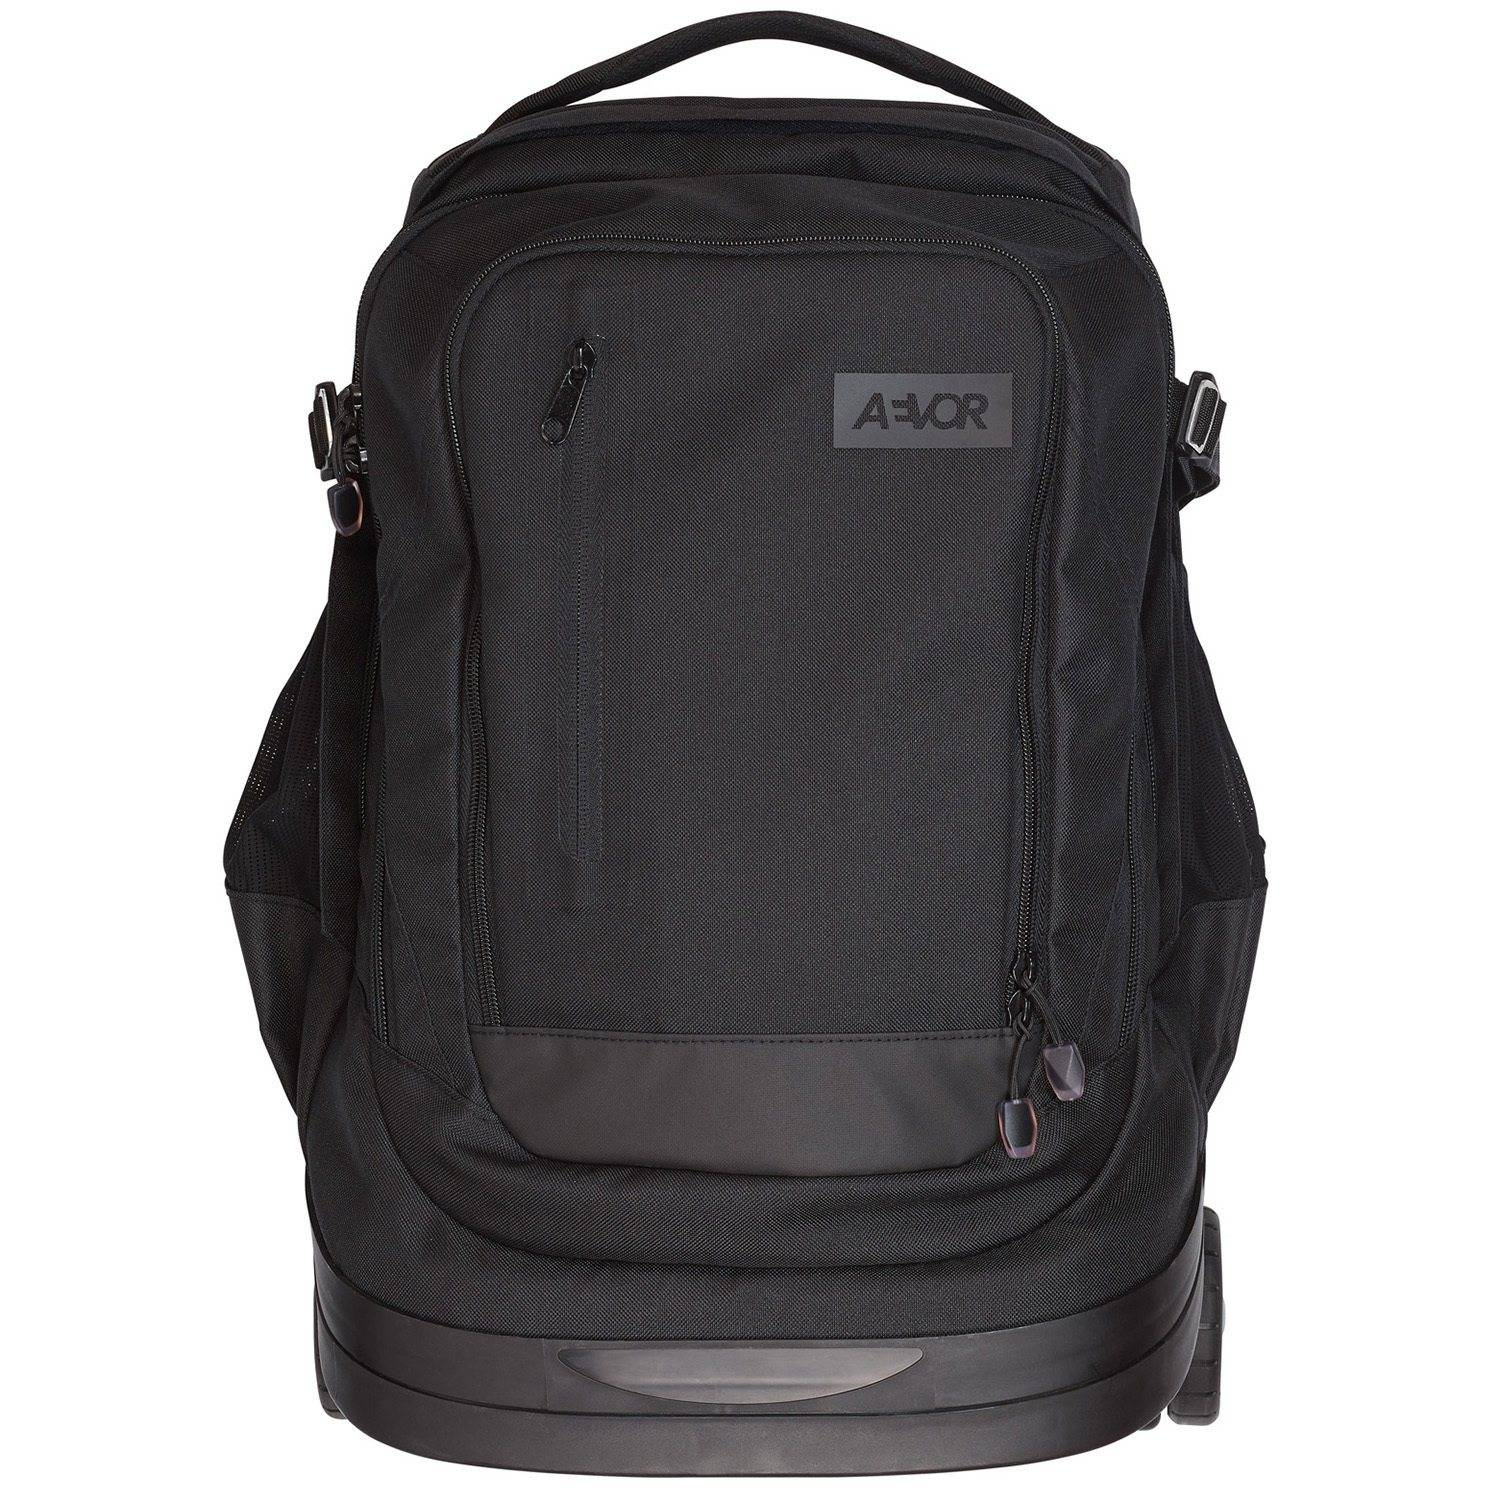 AEVOR 2-Rollen Rucksack Trolley 49 cm, black eclipse